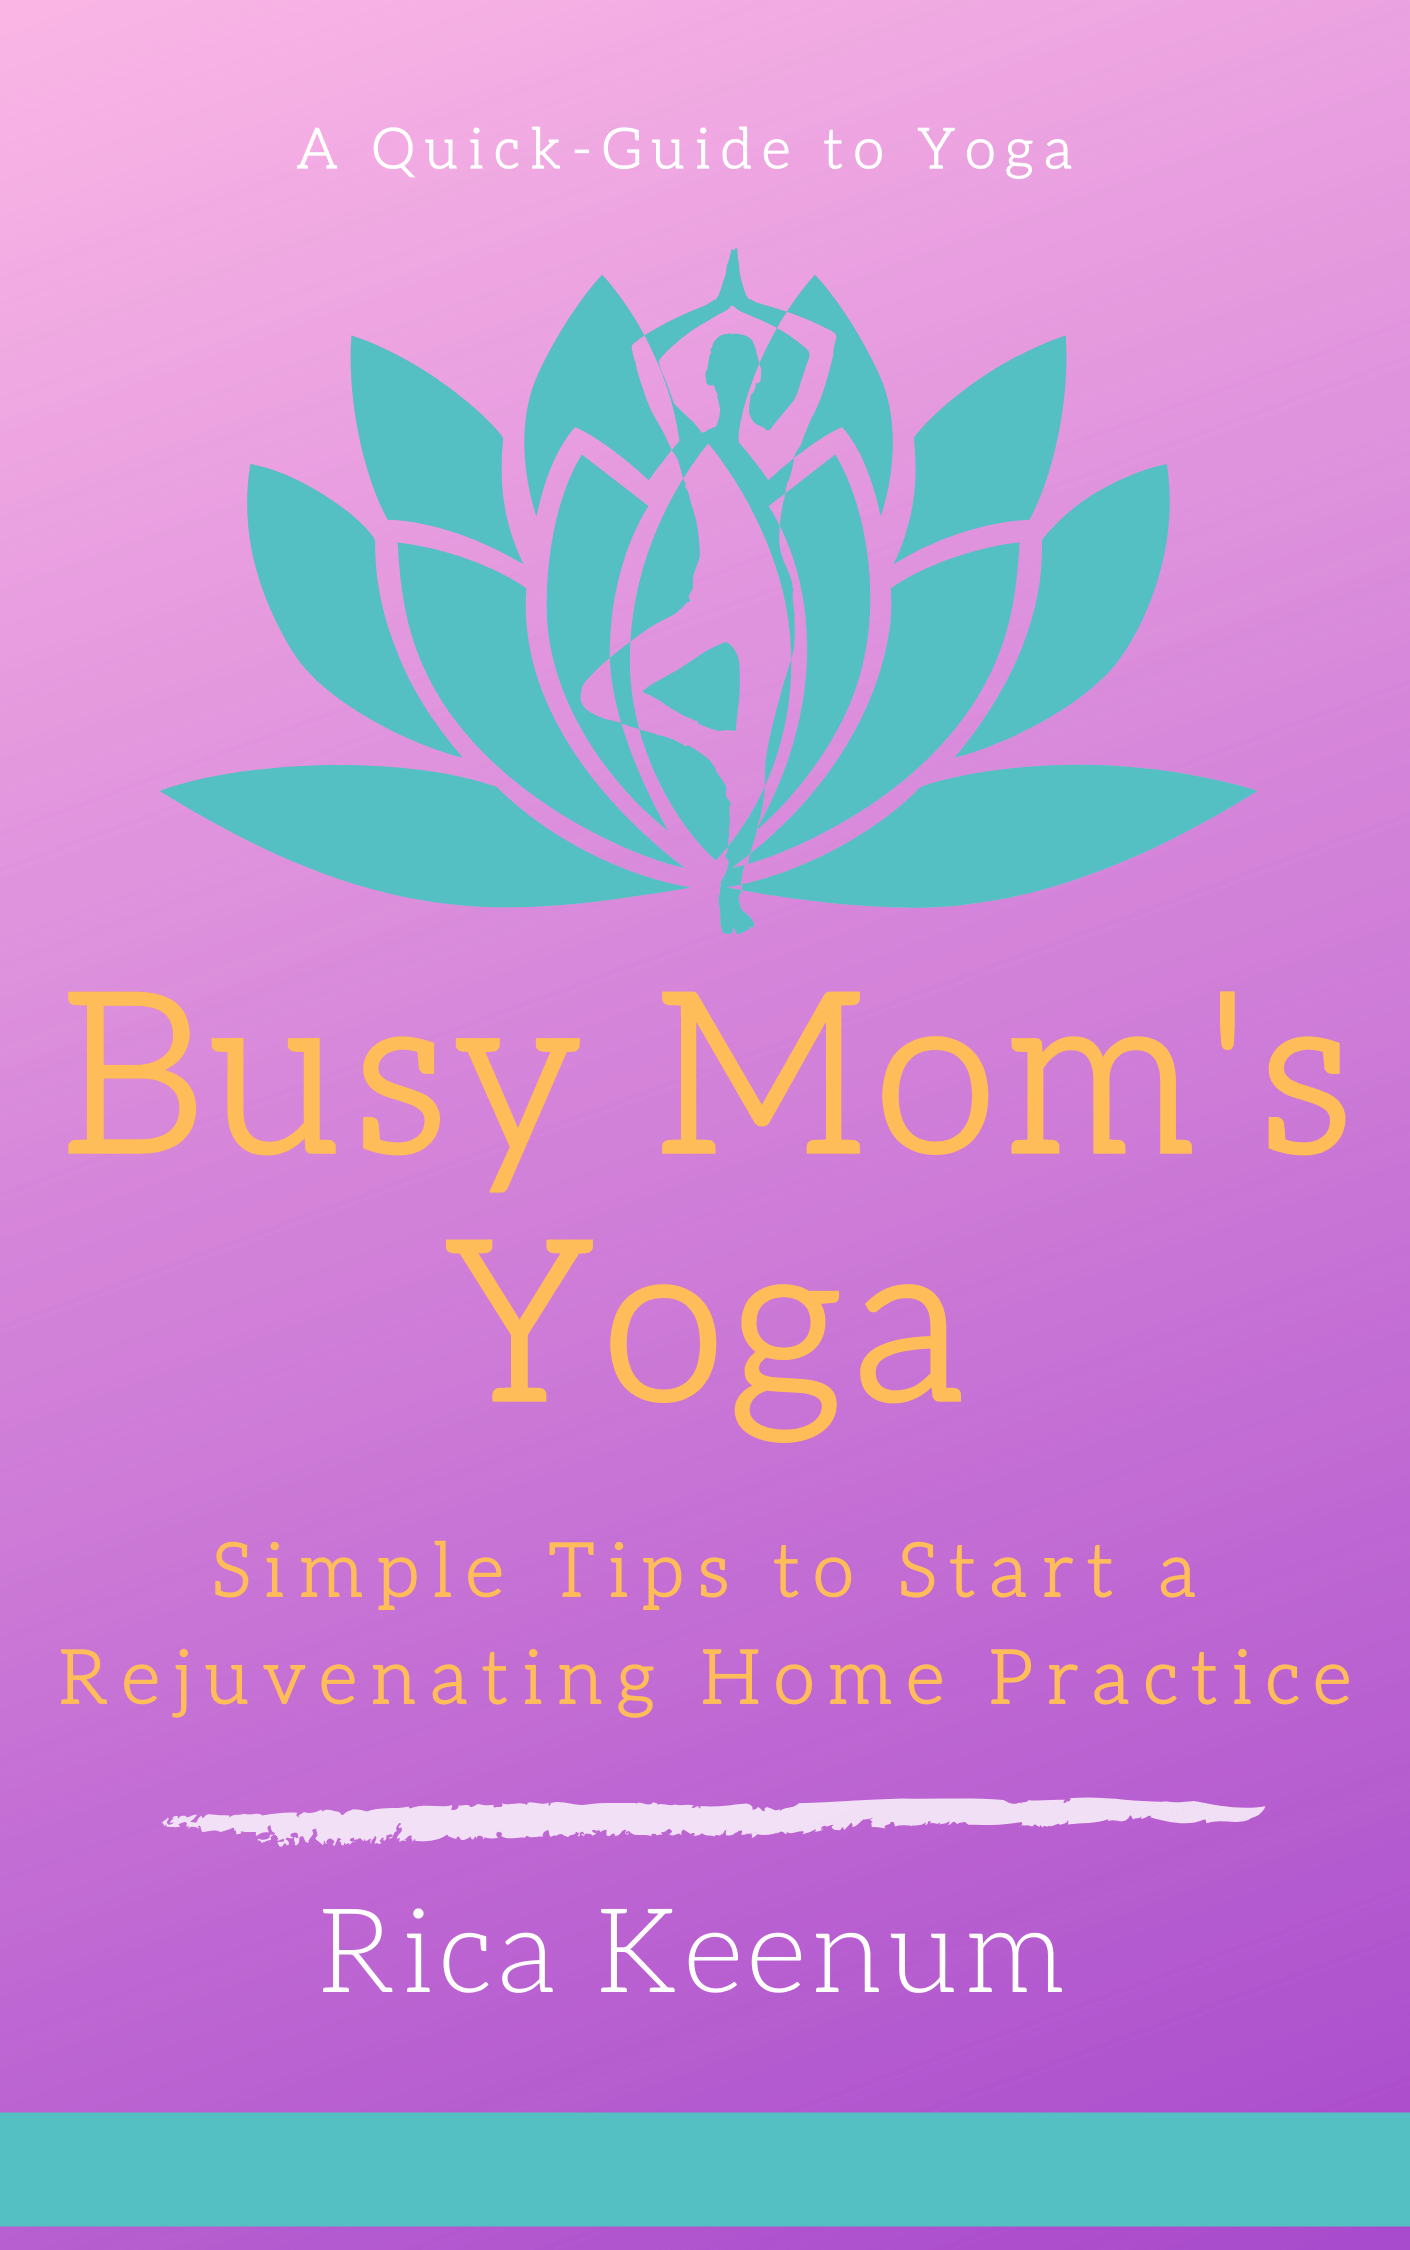 Busy-Moms-Yoga-Guide-1.png